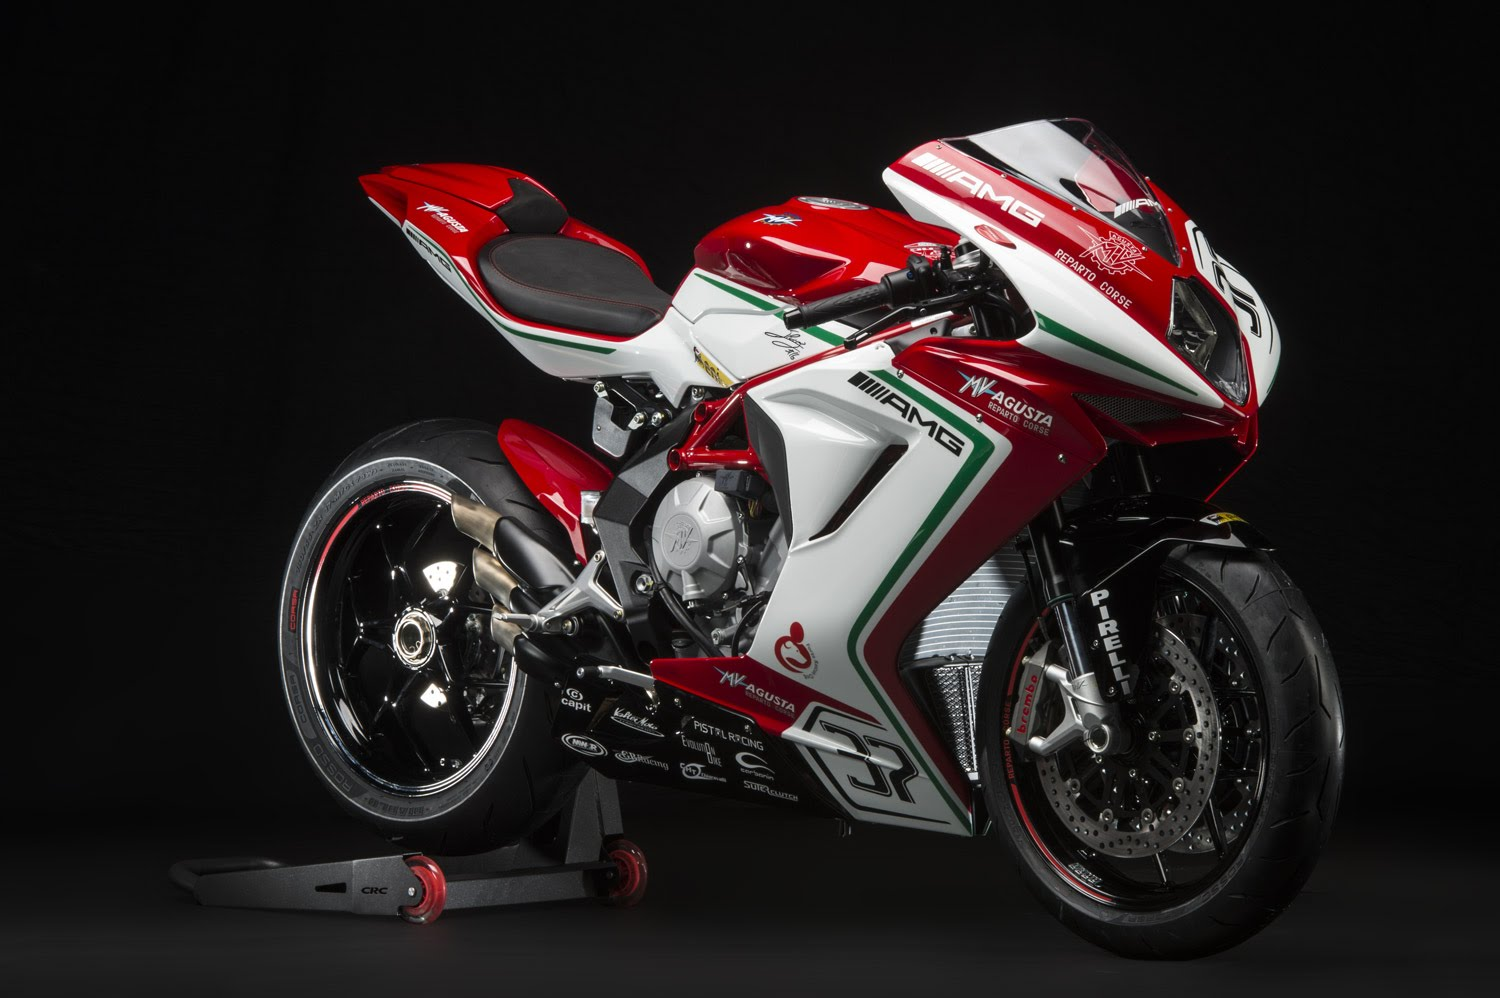 The company has offered a limited edition of MV Agusta F3 800 RC which was earlier released this year